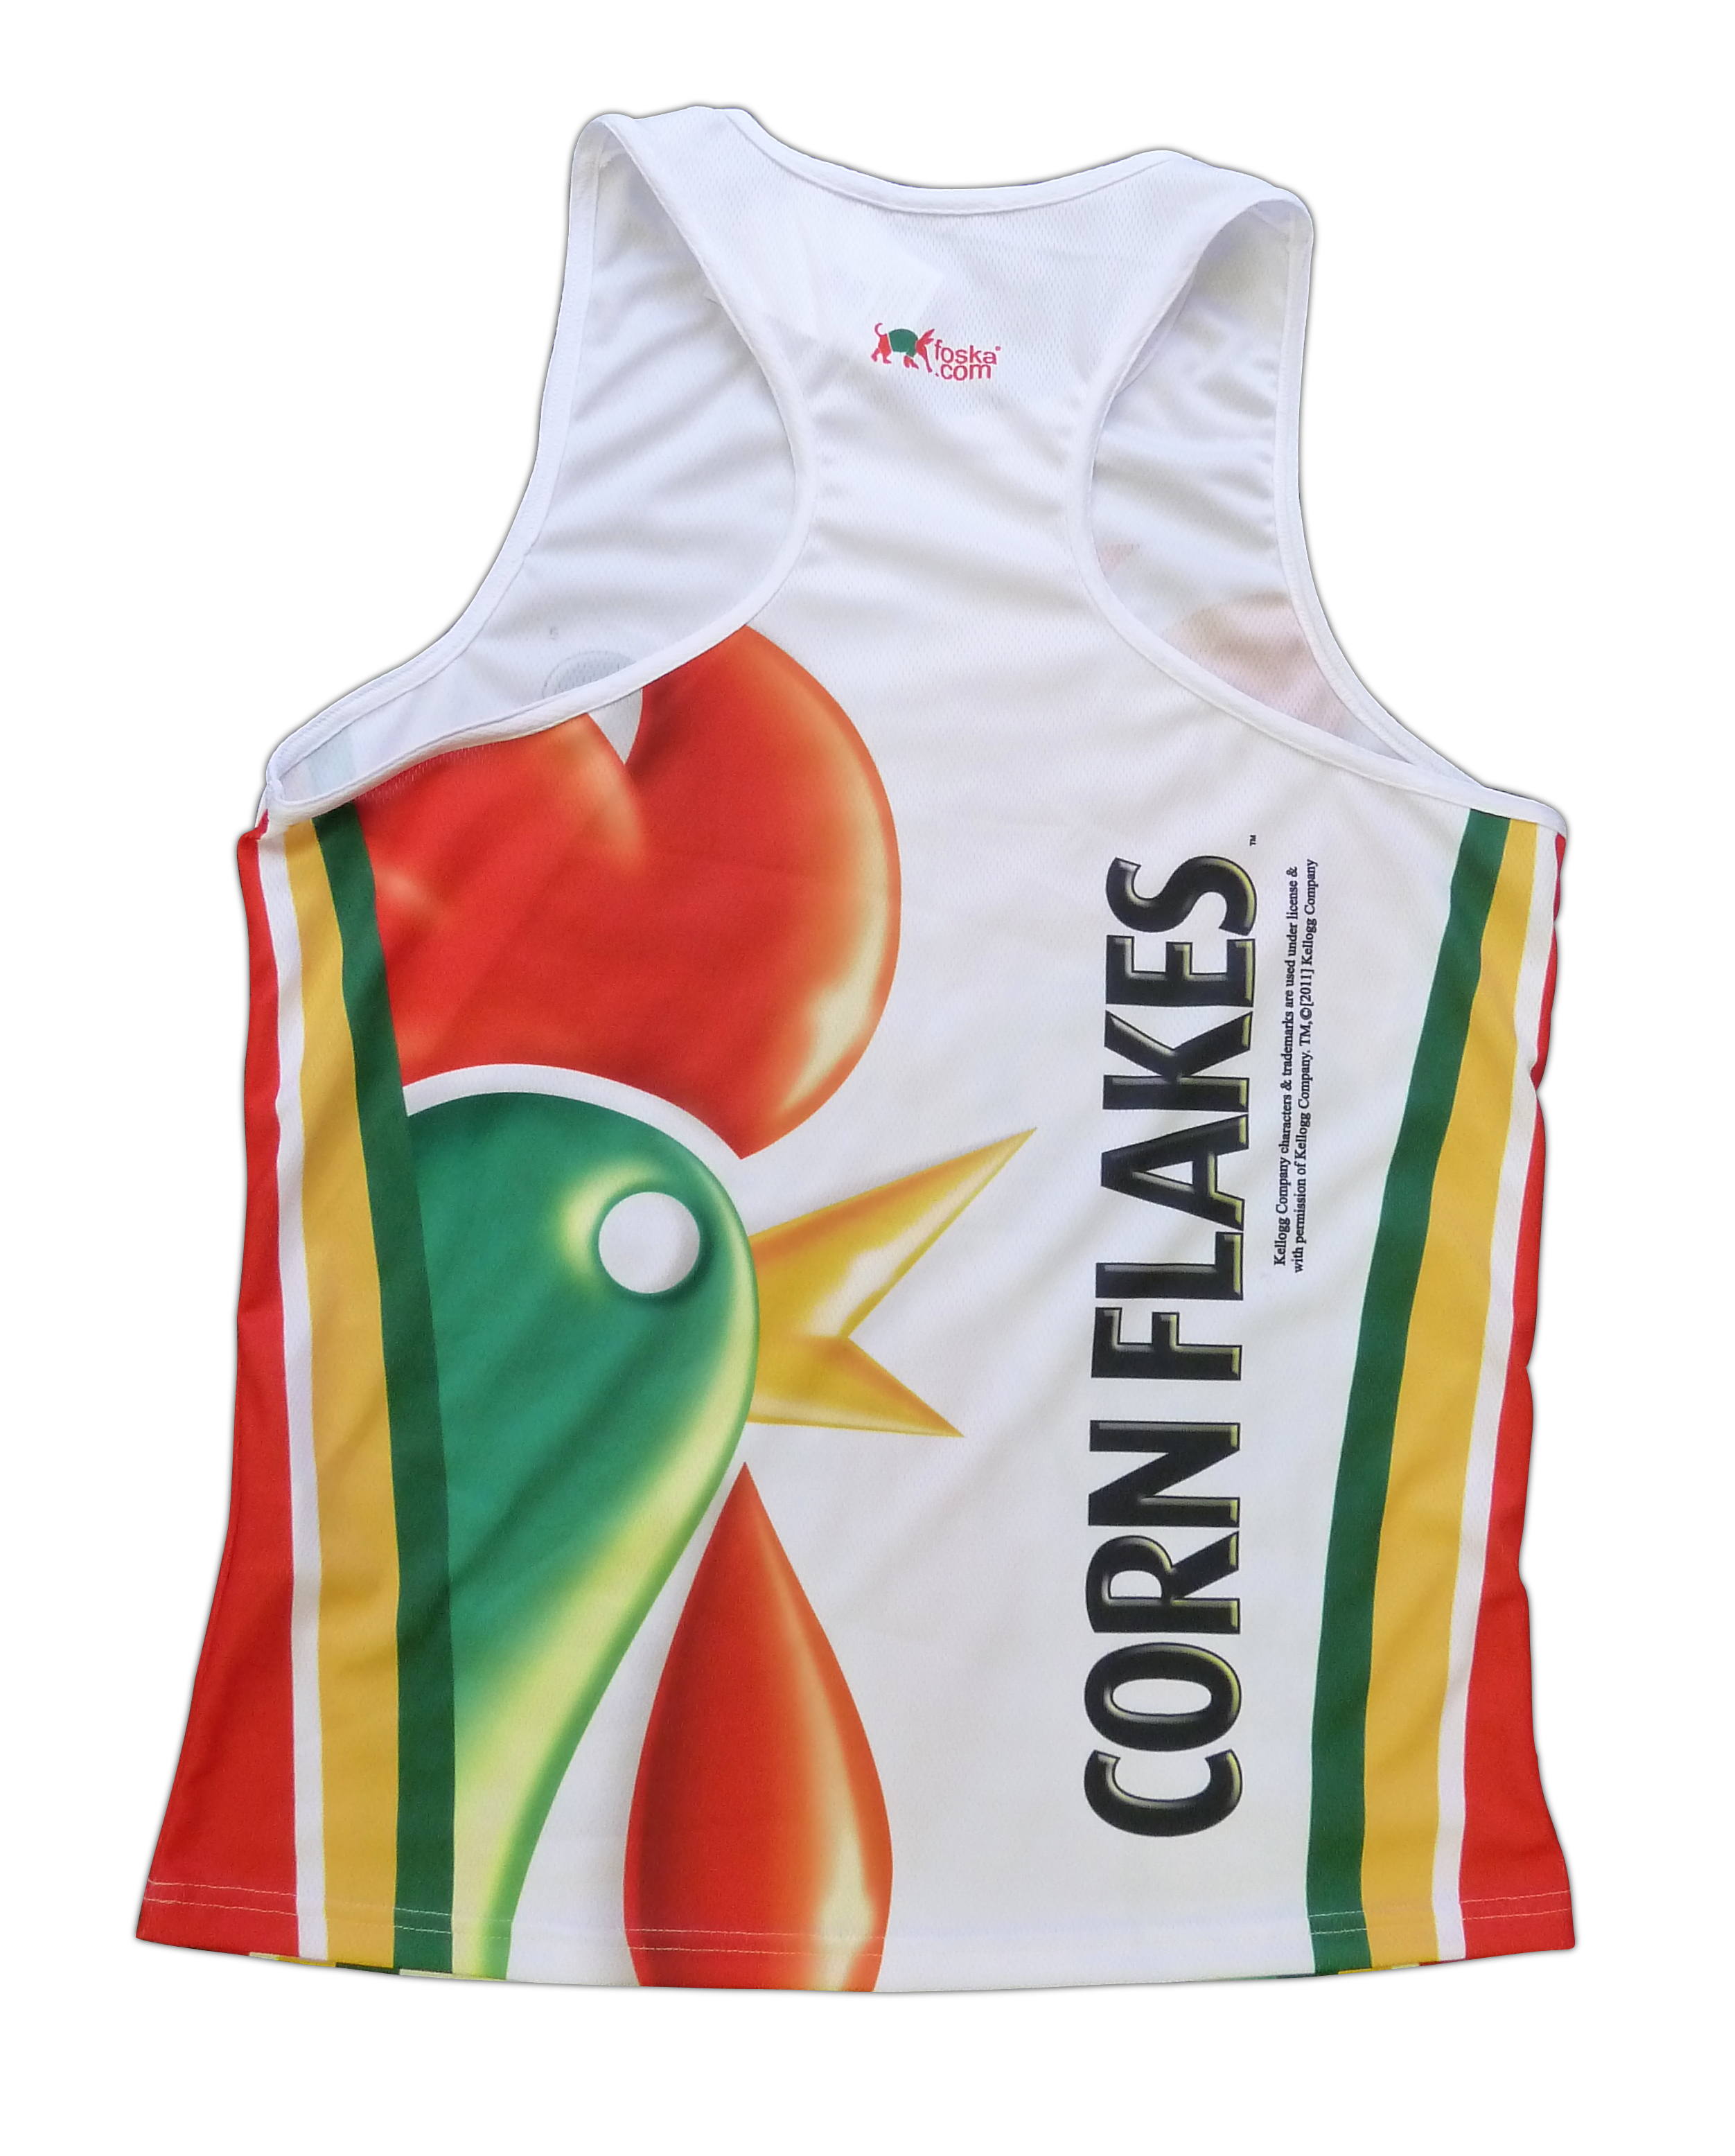 Corn Flakes Cereal Cycling Jersey Short Sleeve